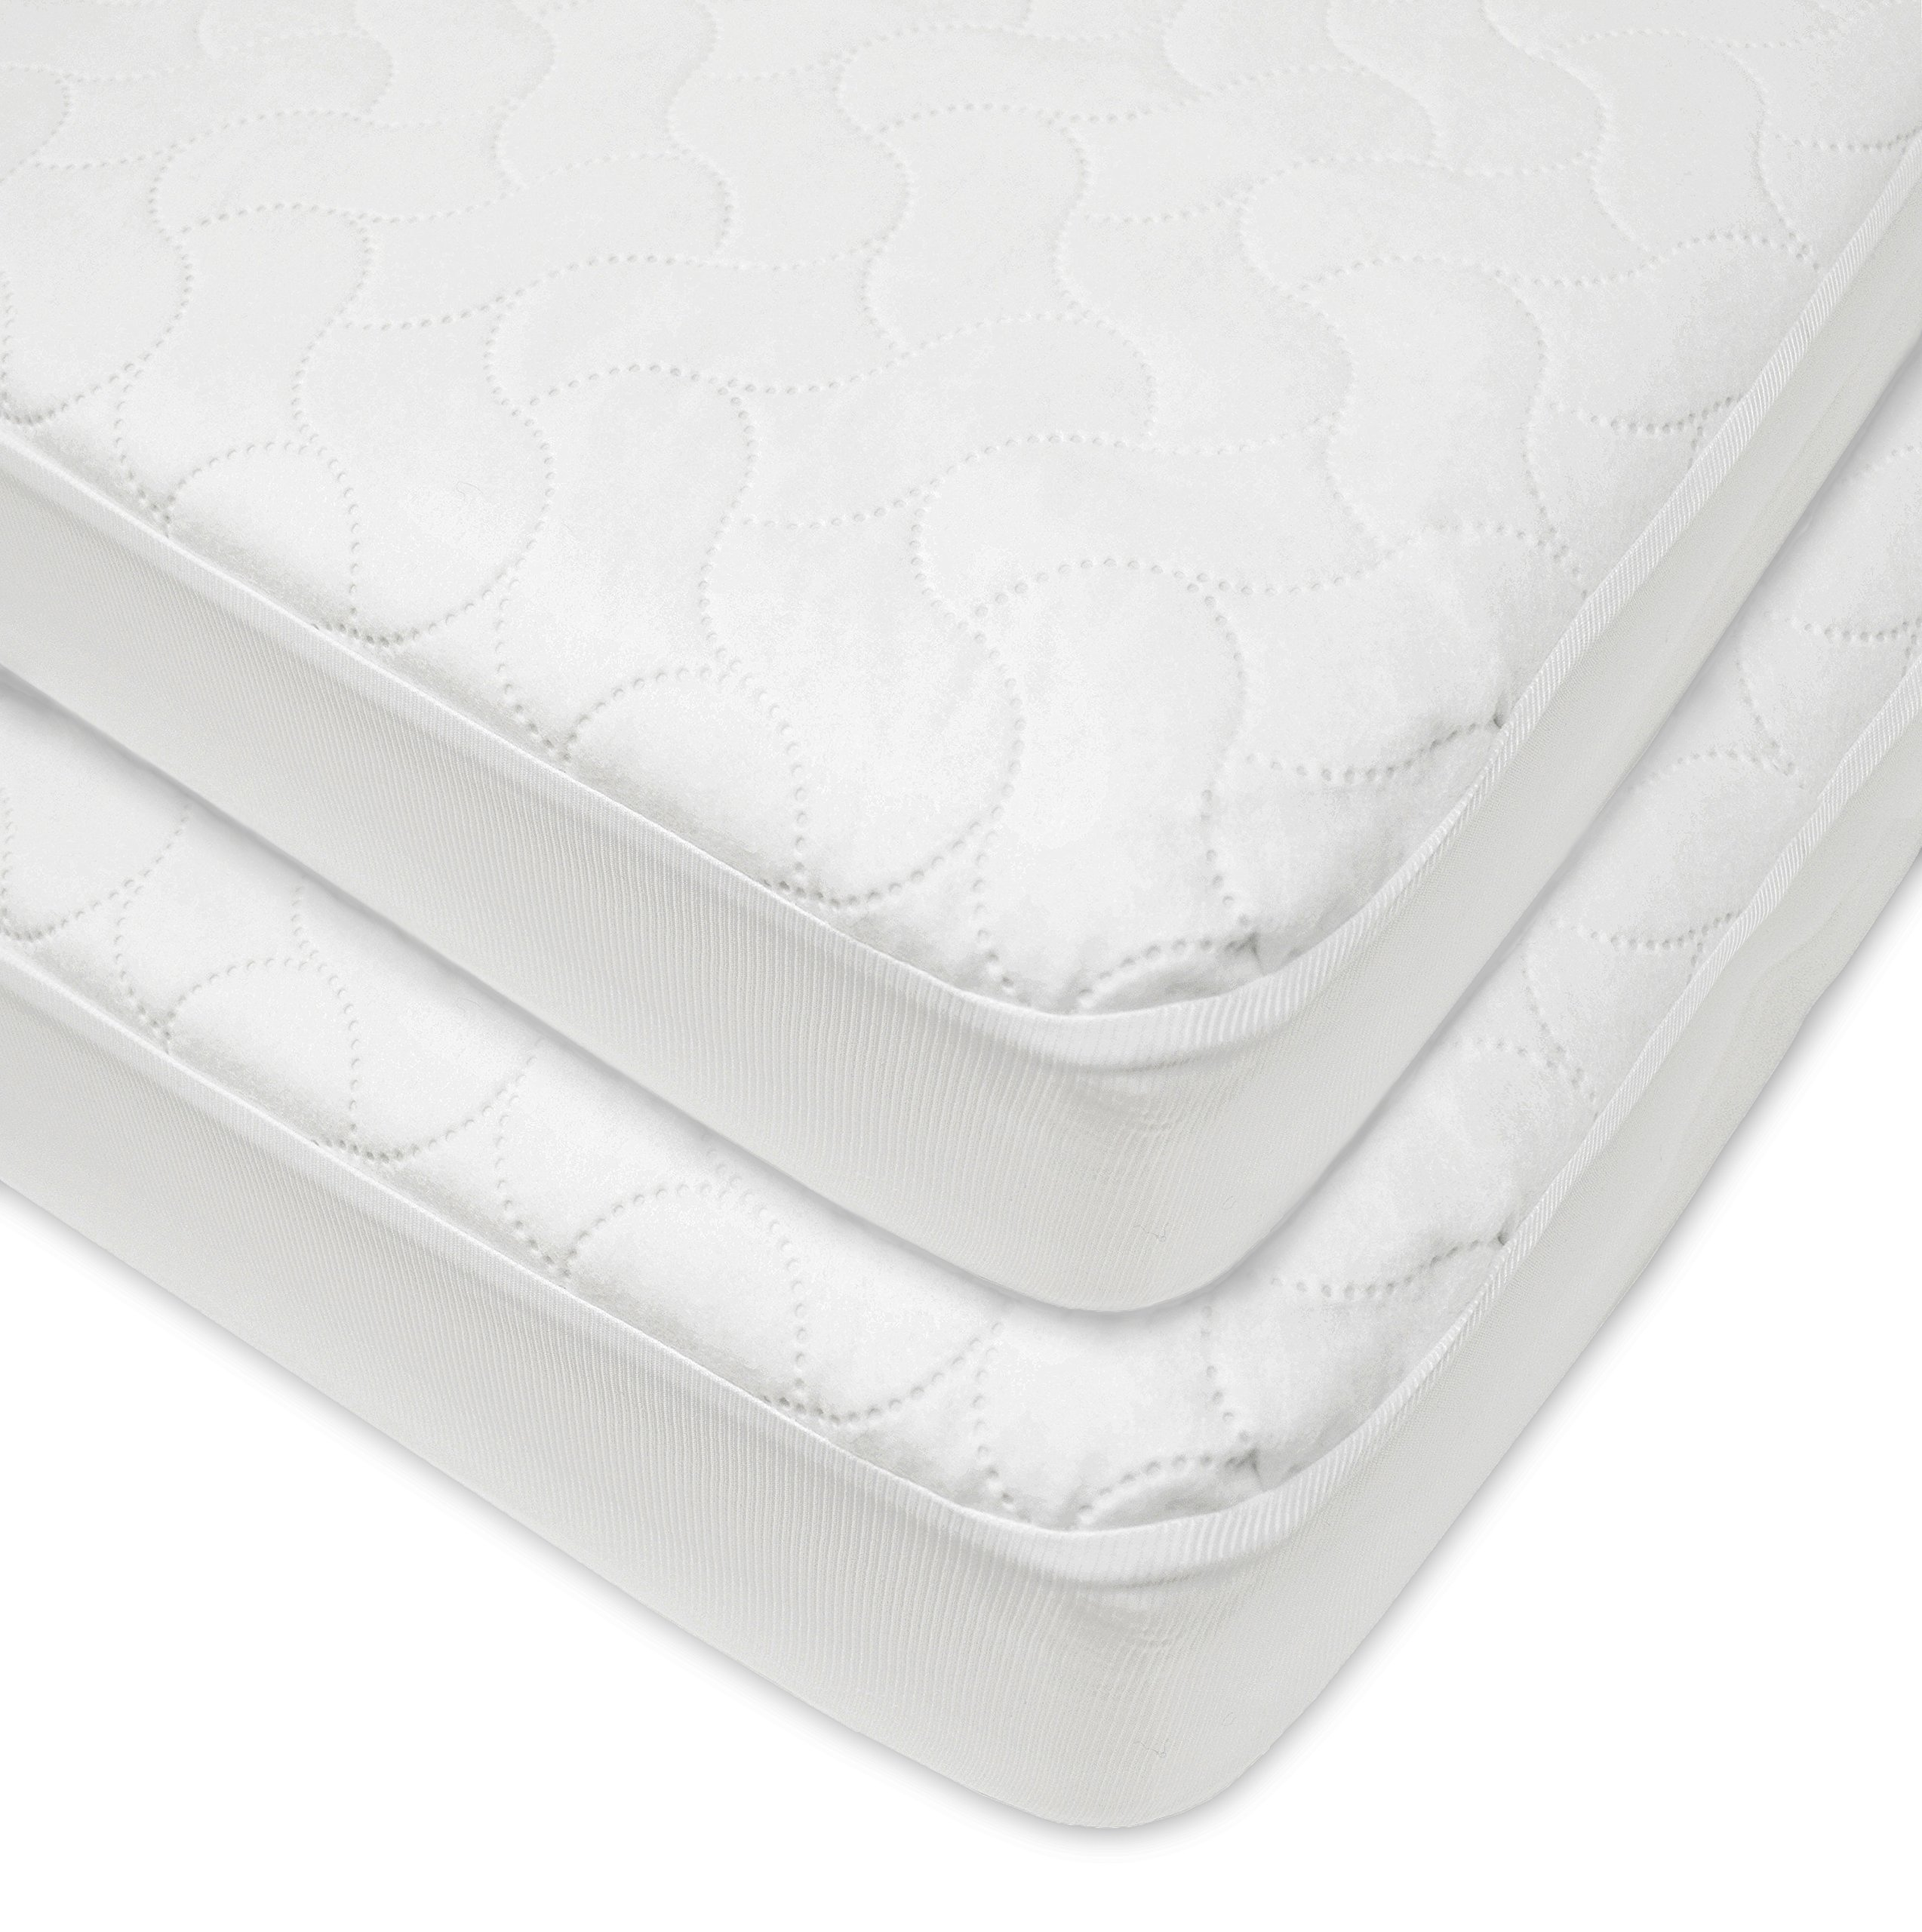 American Baby Company Waterproof Fitted Quilted Crib and Toddler Protective Pad Cover, (2 Pack)White